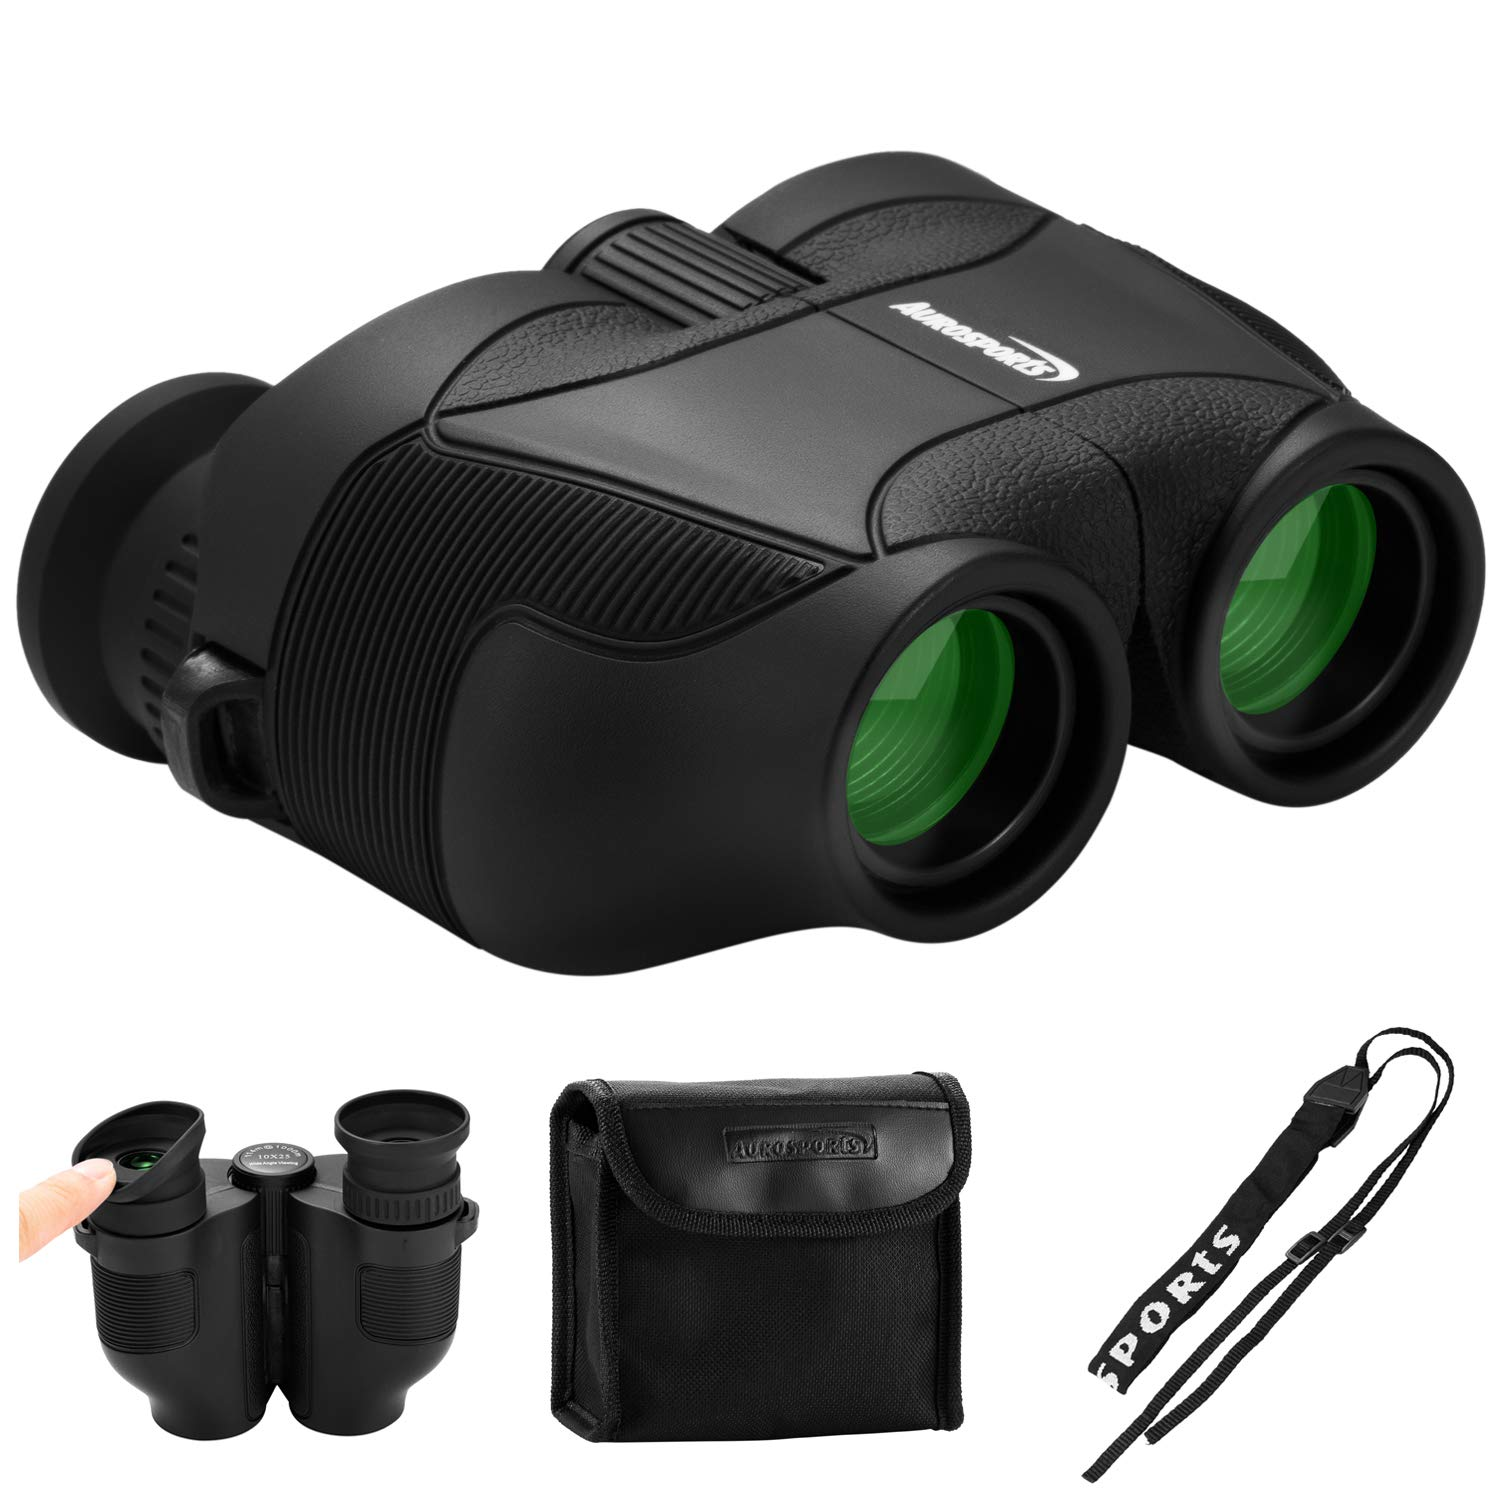 Aurosports 12x25 HD Compact Binoculars with New Upgraded Foldable Eyepiece,High Powered Binocular with FMC Bak4 Prism Fit Adults Kids for Bird Watching Hunting Camping Hiking Concert by aurosports